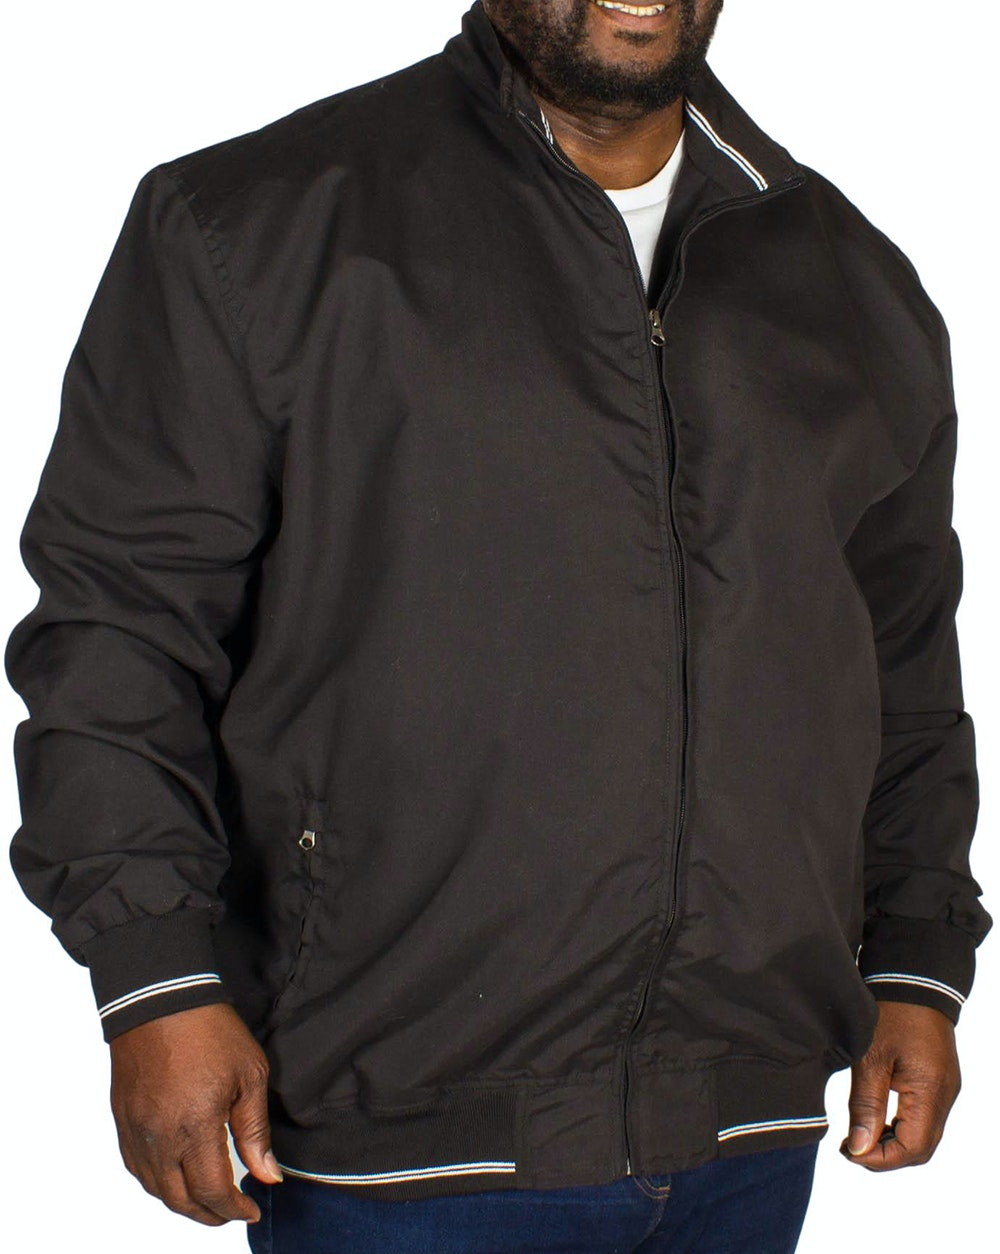 KAM Summer Jacket Black